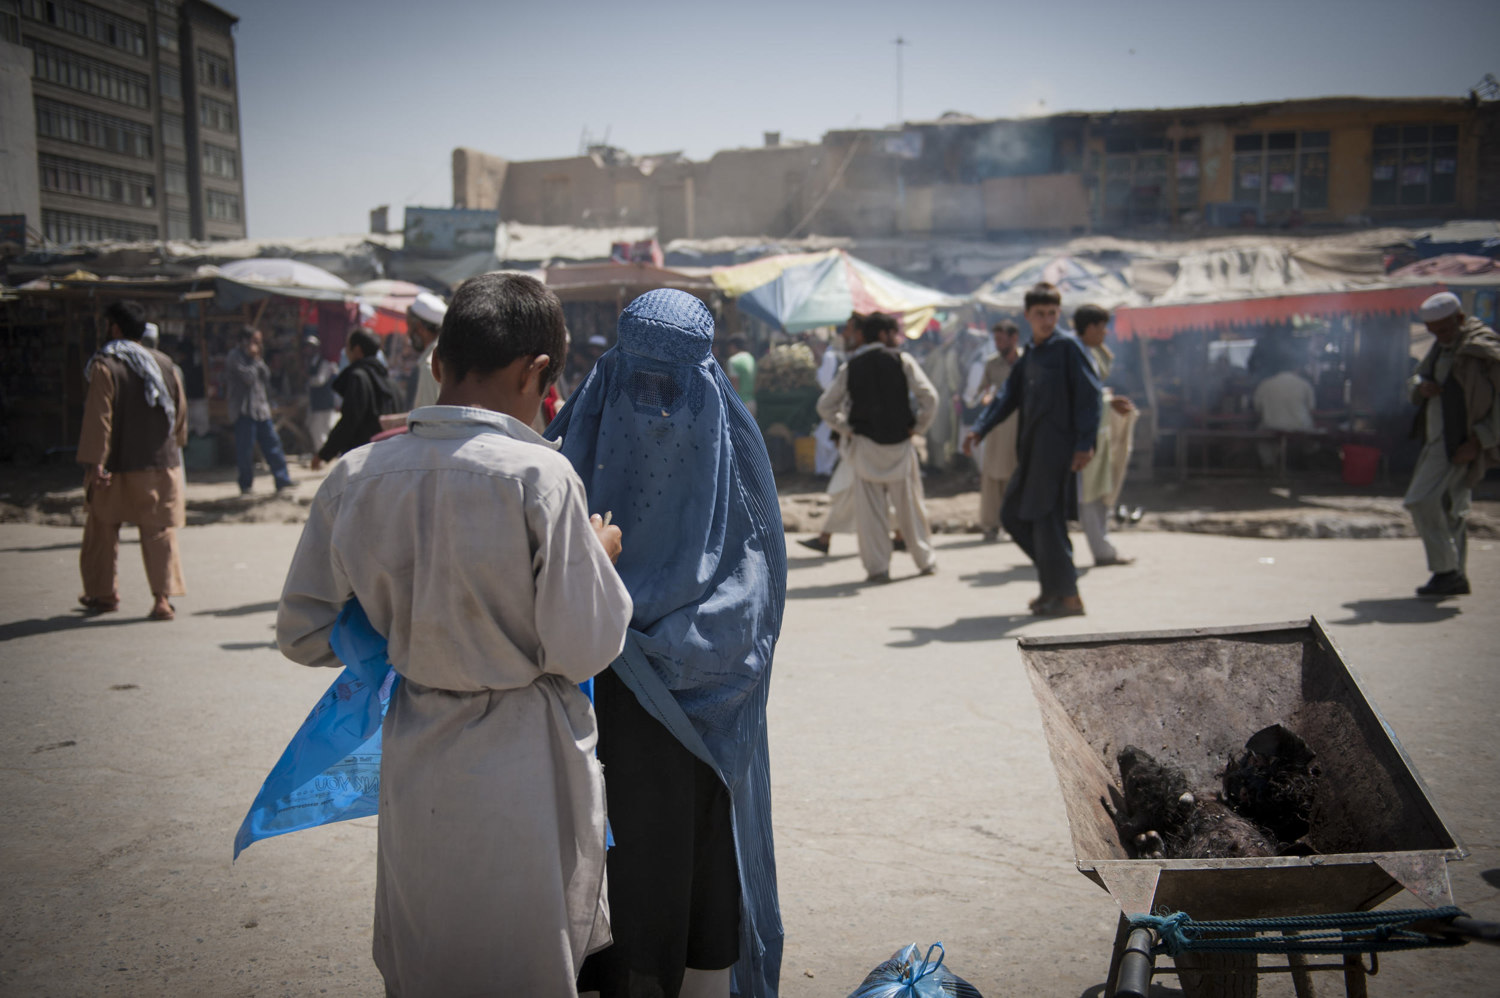 A burka clad woman purchases a calf head for a soup in a busy market near the Old City of Kabul, Afghanistan.